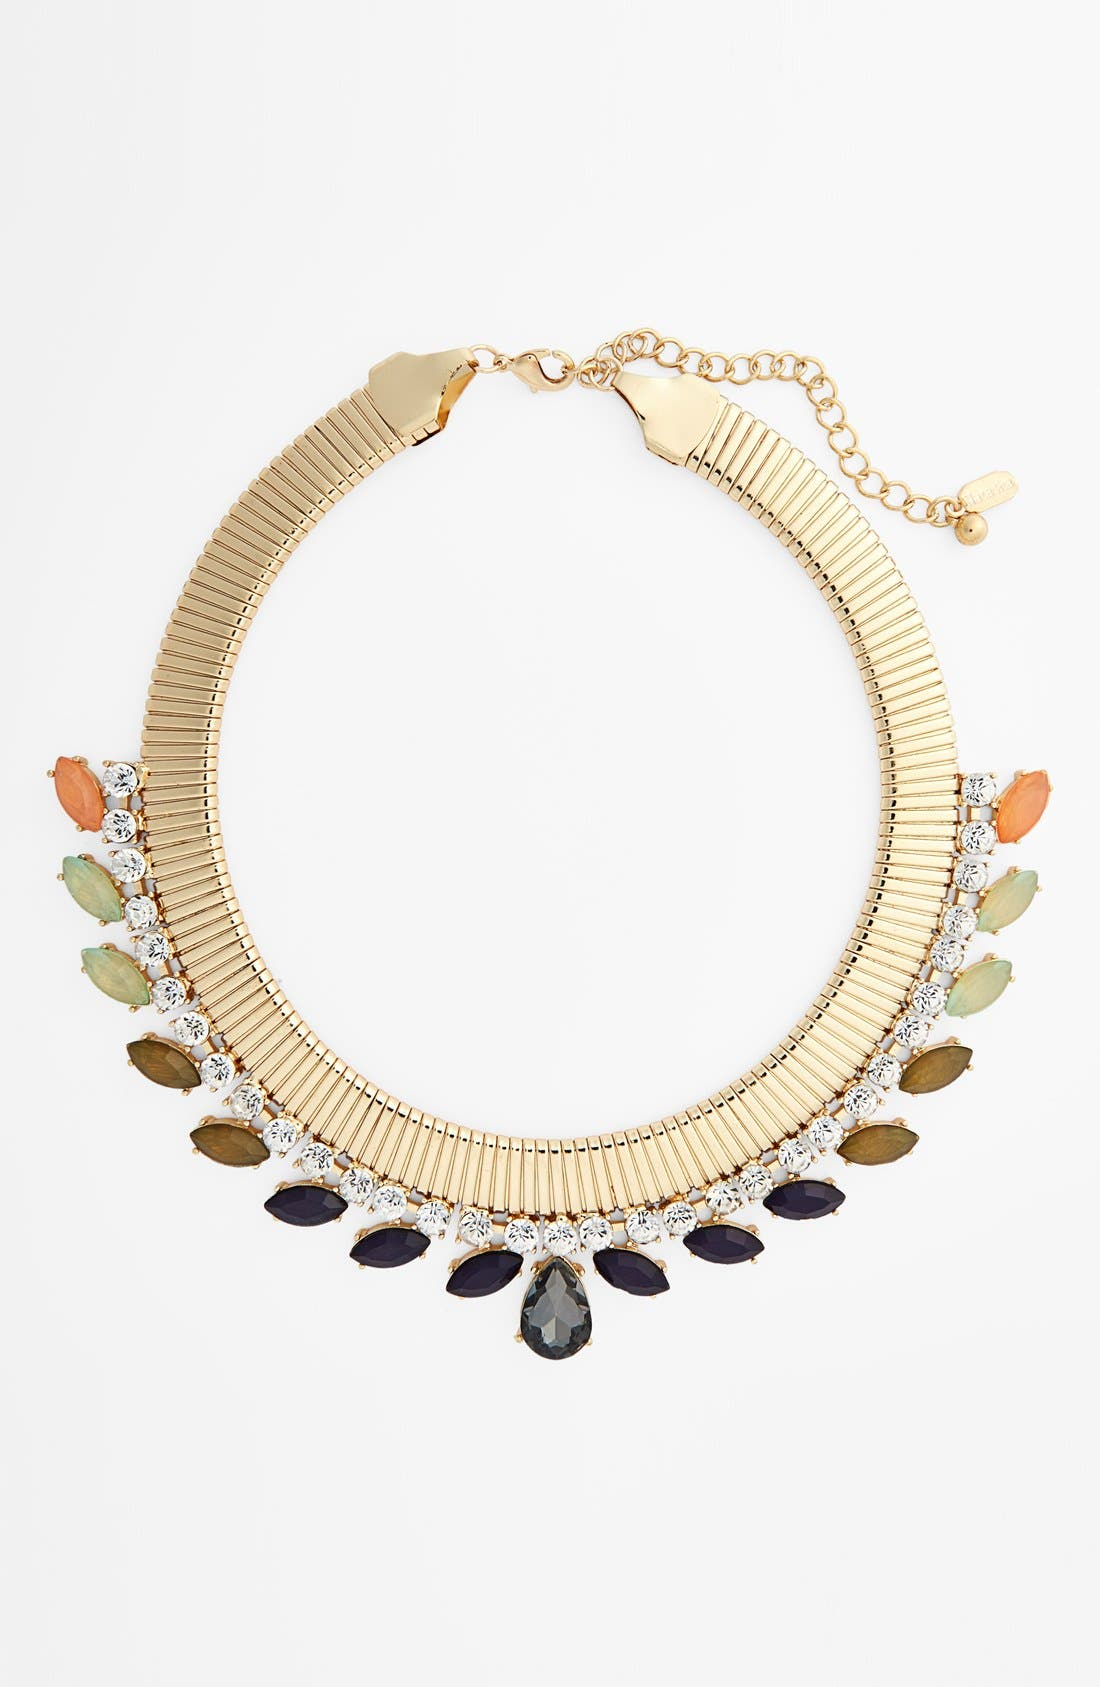 Main Image - Natasha Couture Snake Chain Ombré Collar Necklace